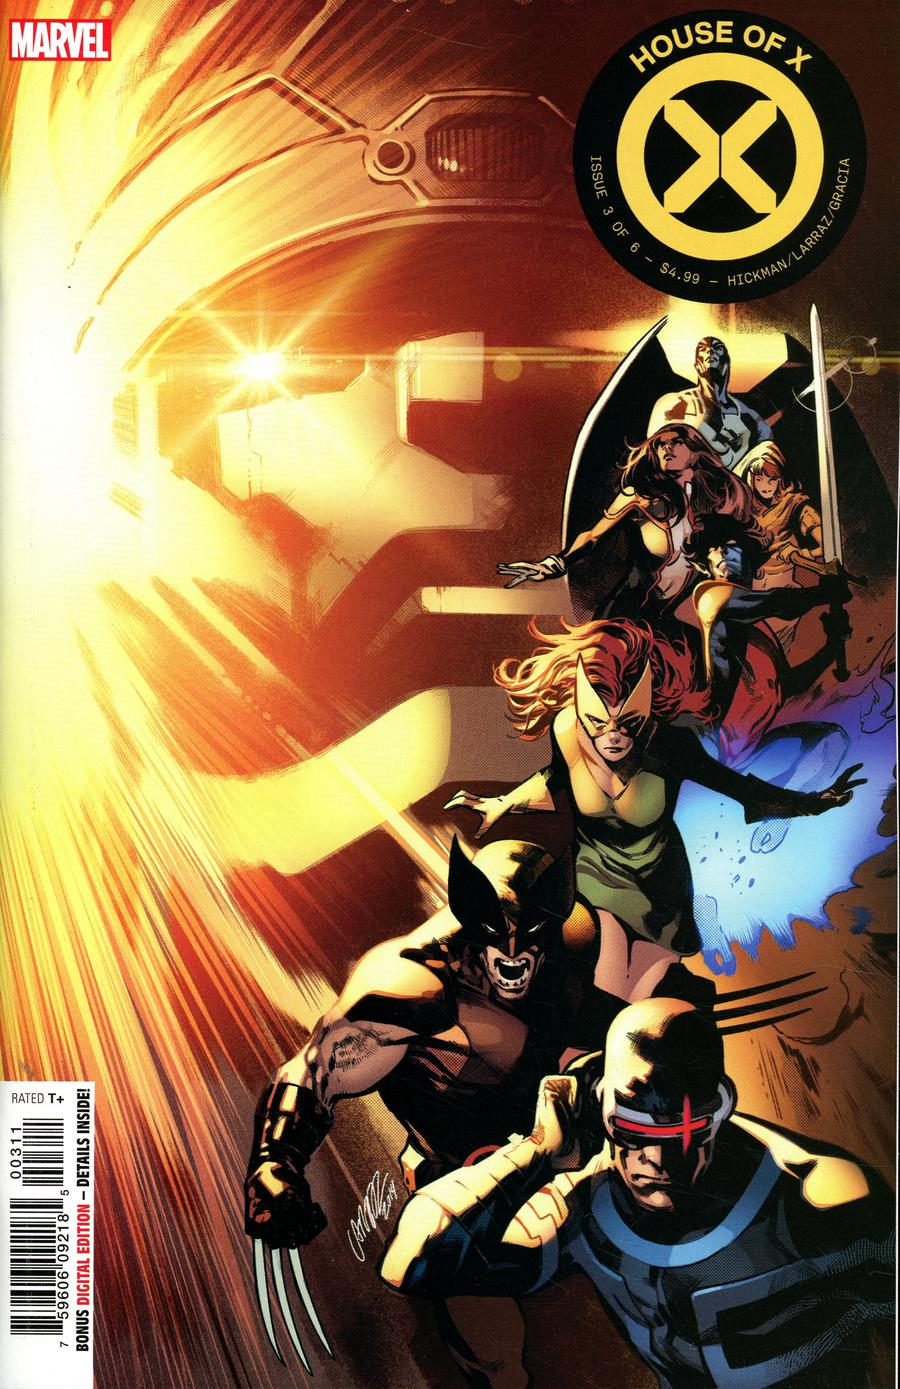 HOUSE OF X #3 STANDARD A COVER MARVEL 2019 STOCK IMAGE